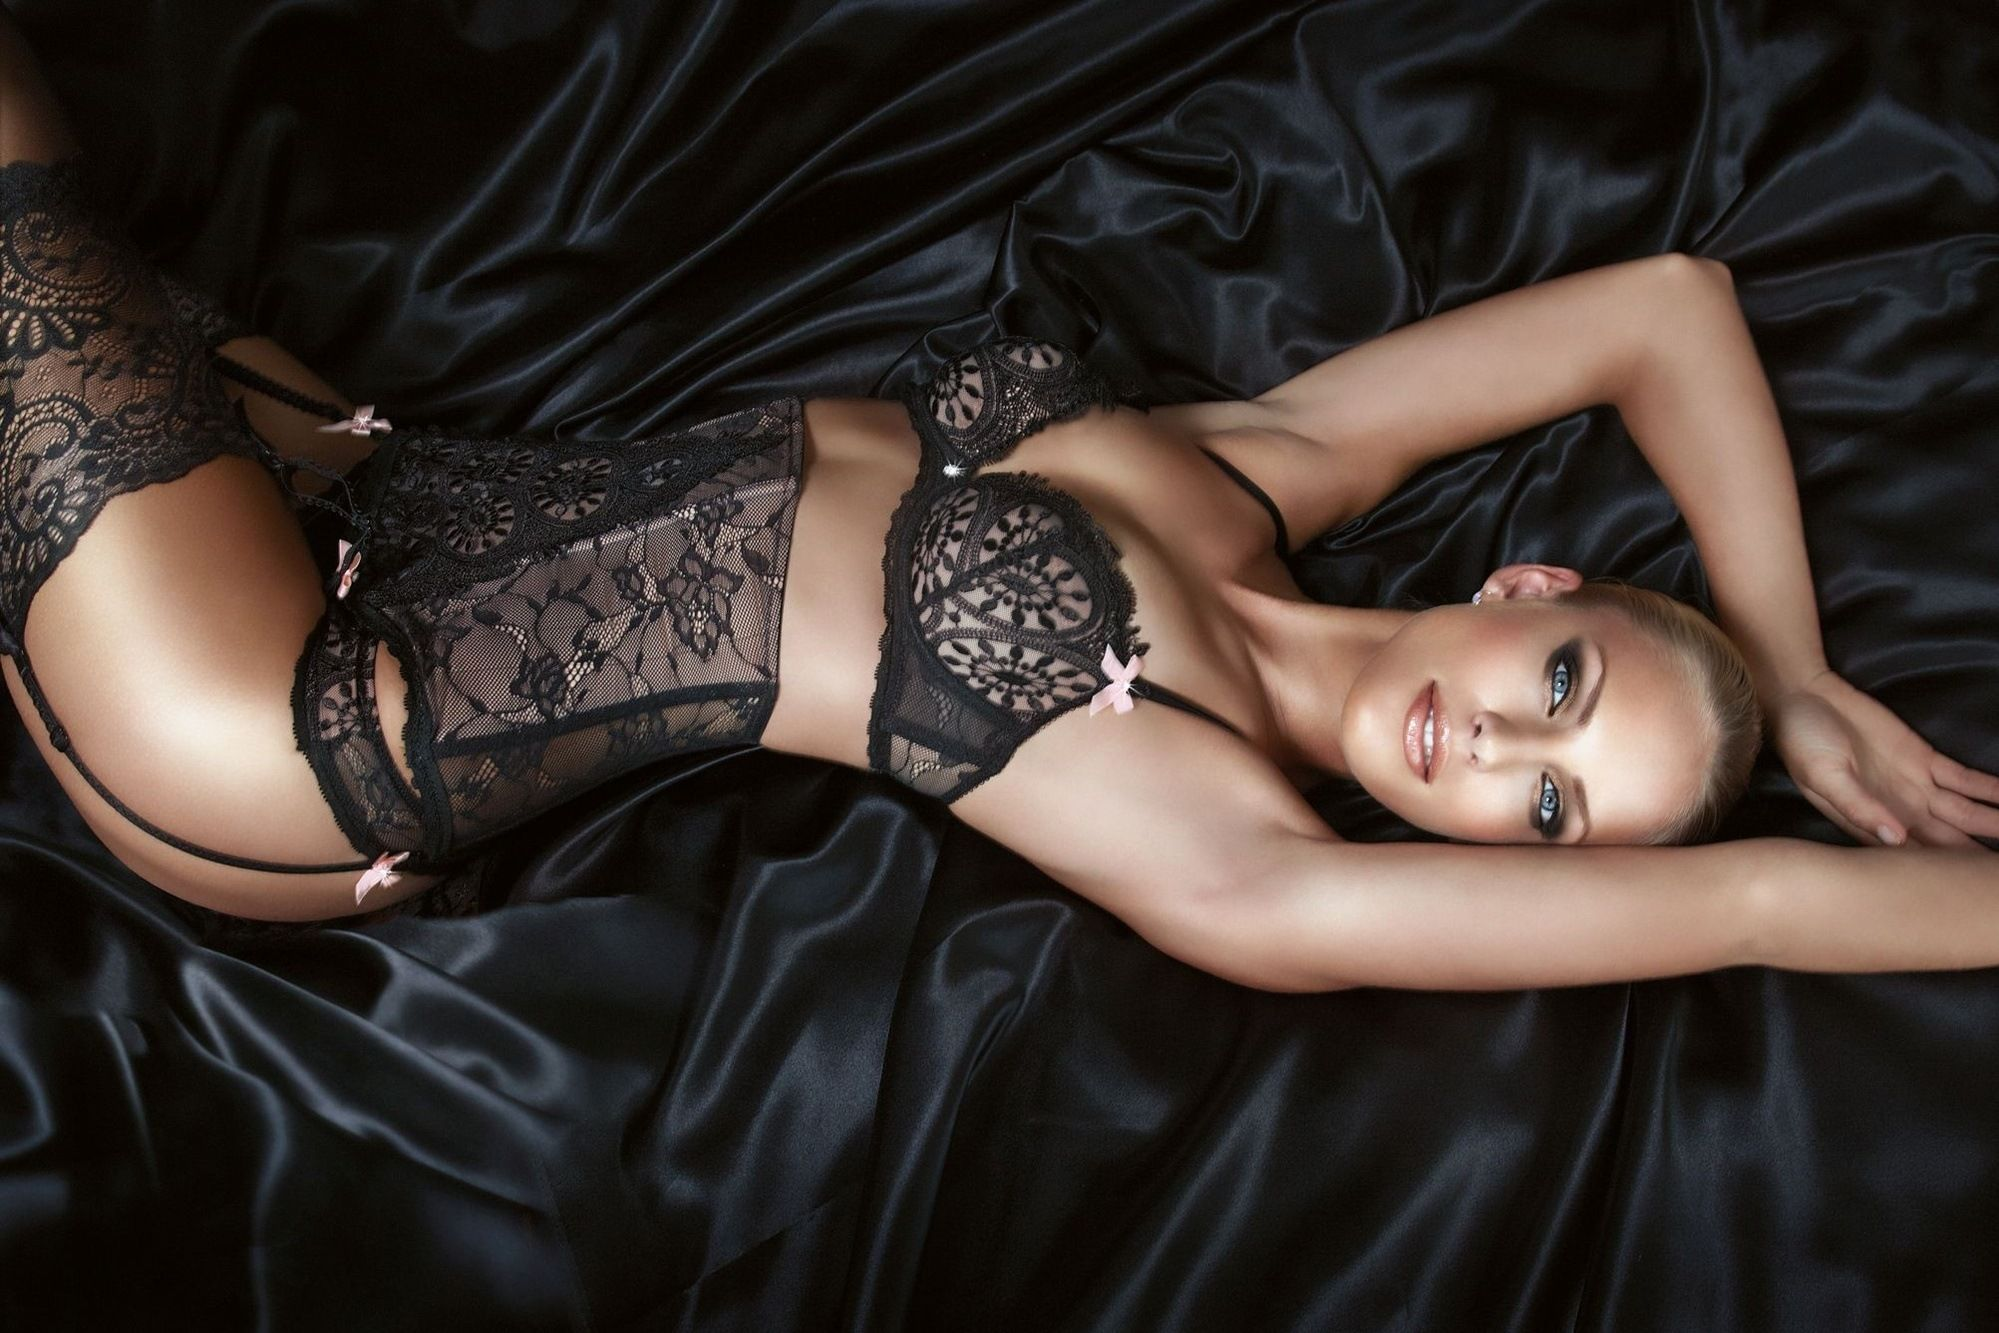 Gothic Lingerie Wallpapers